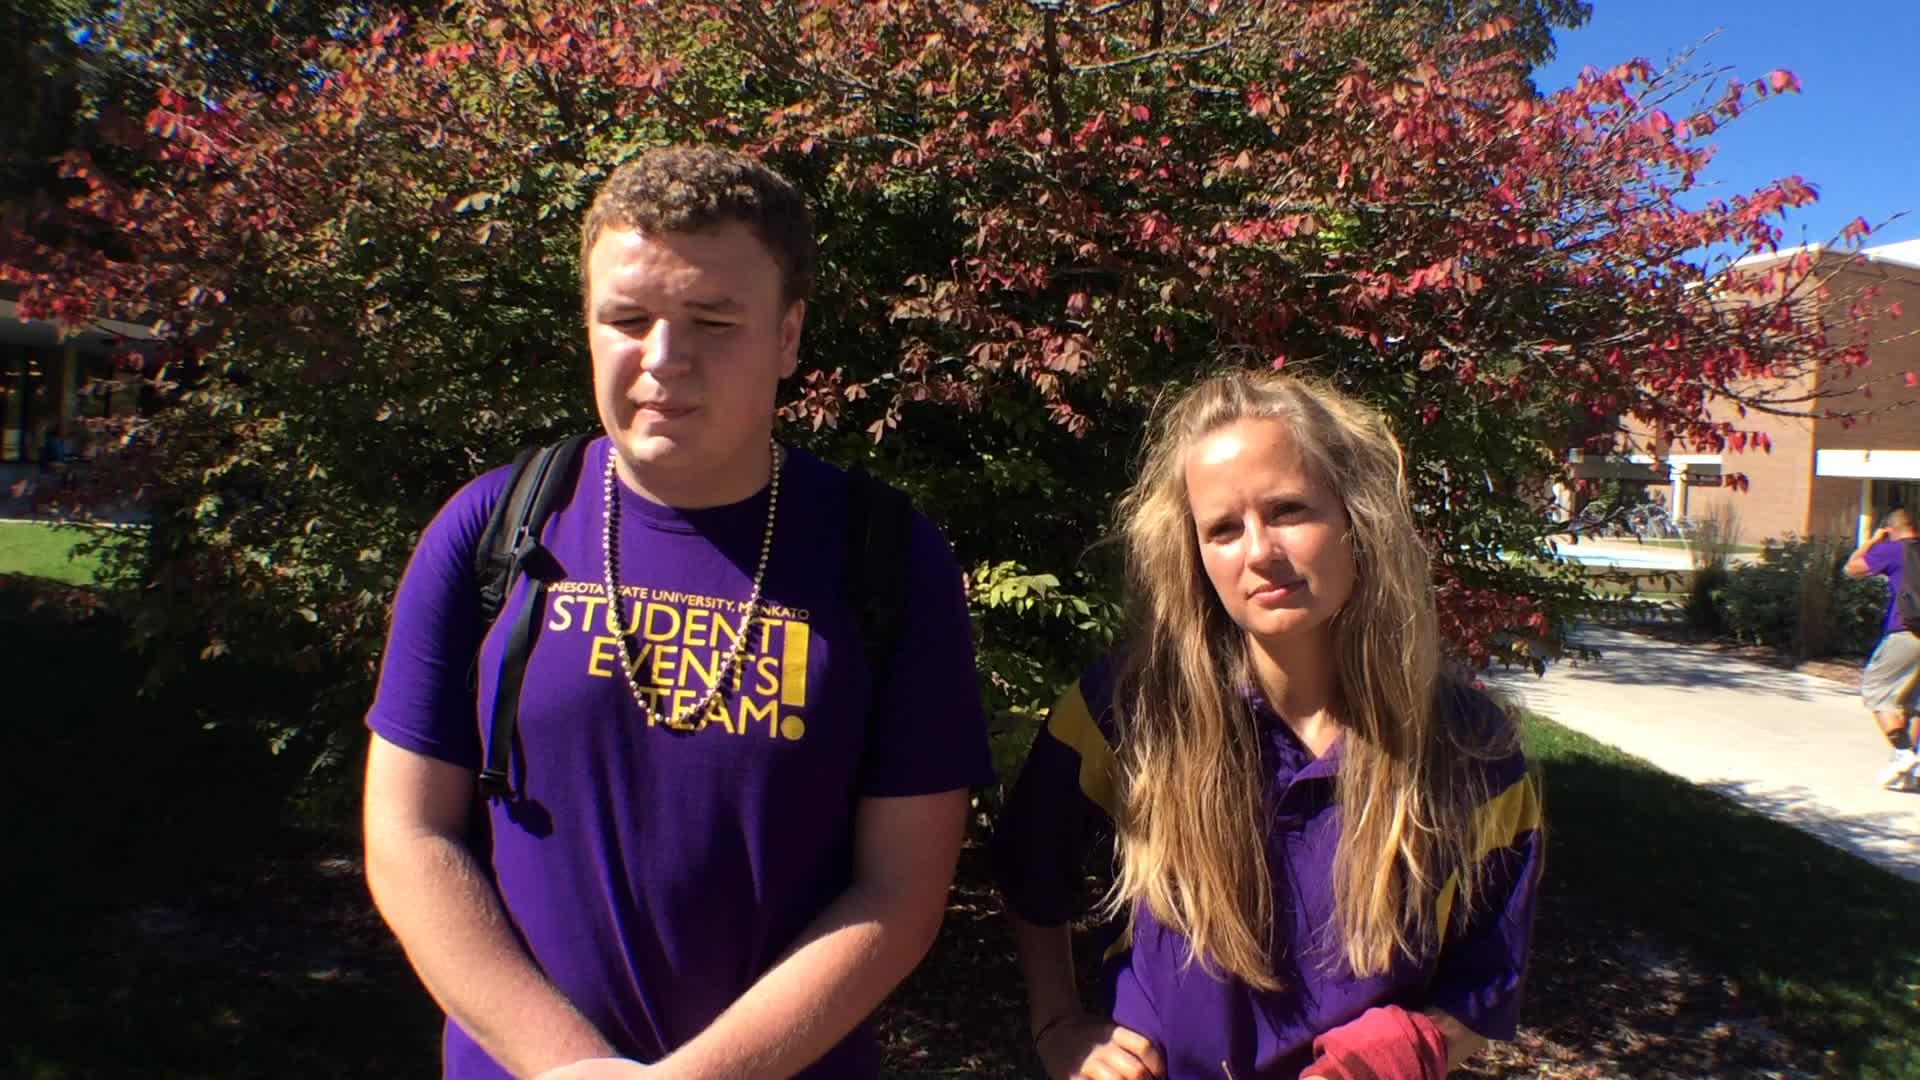 Andrew Stromme and Ashley Strom, Mankato, MN - Homecoming 2016 at Minnesota State University, Mankato